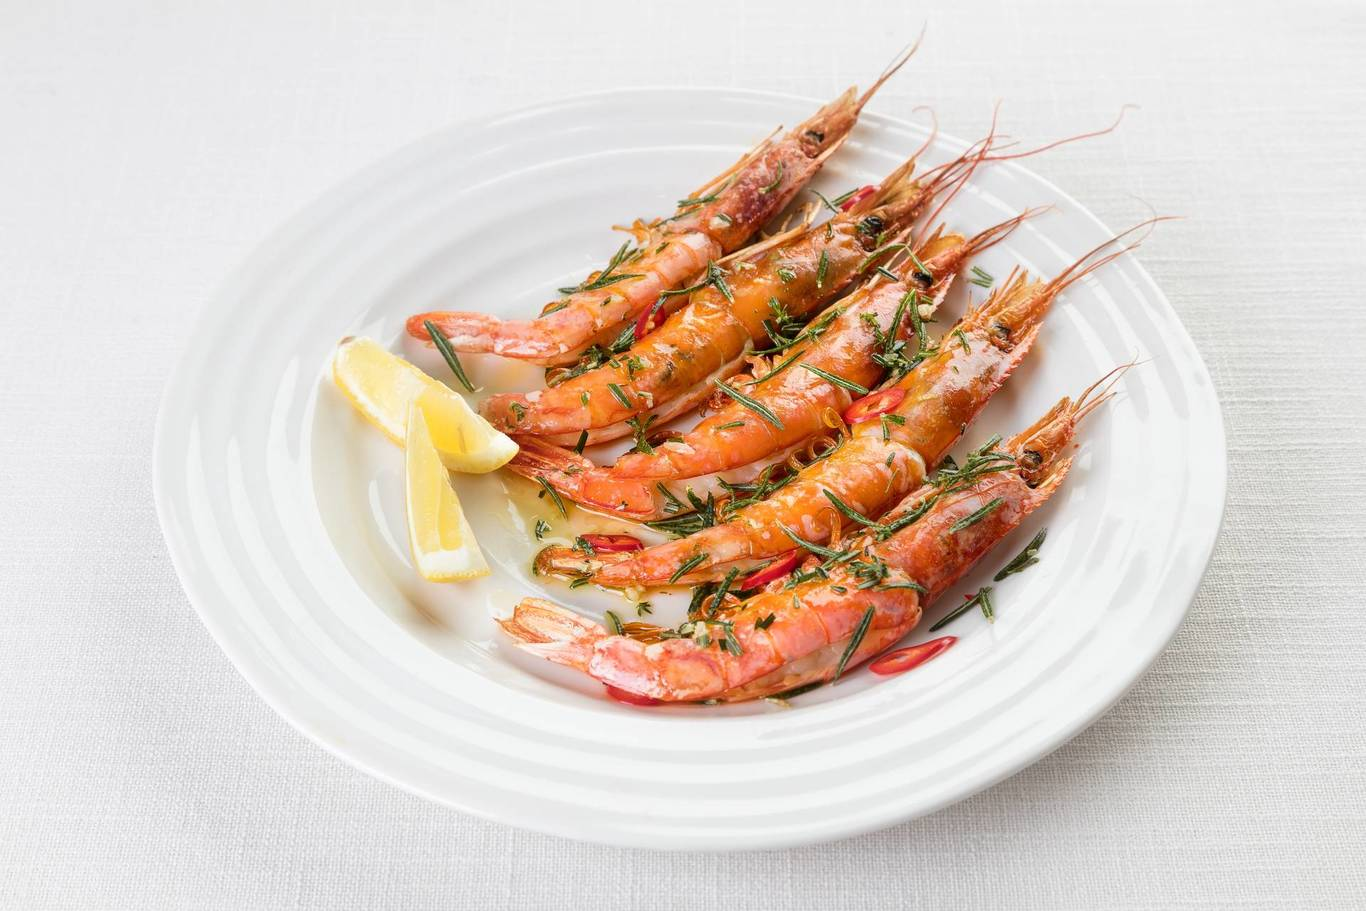 Shrimps with herbs